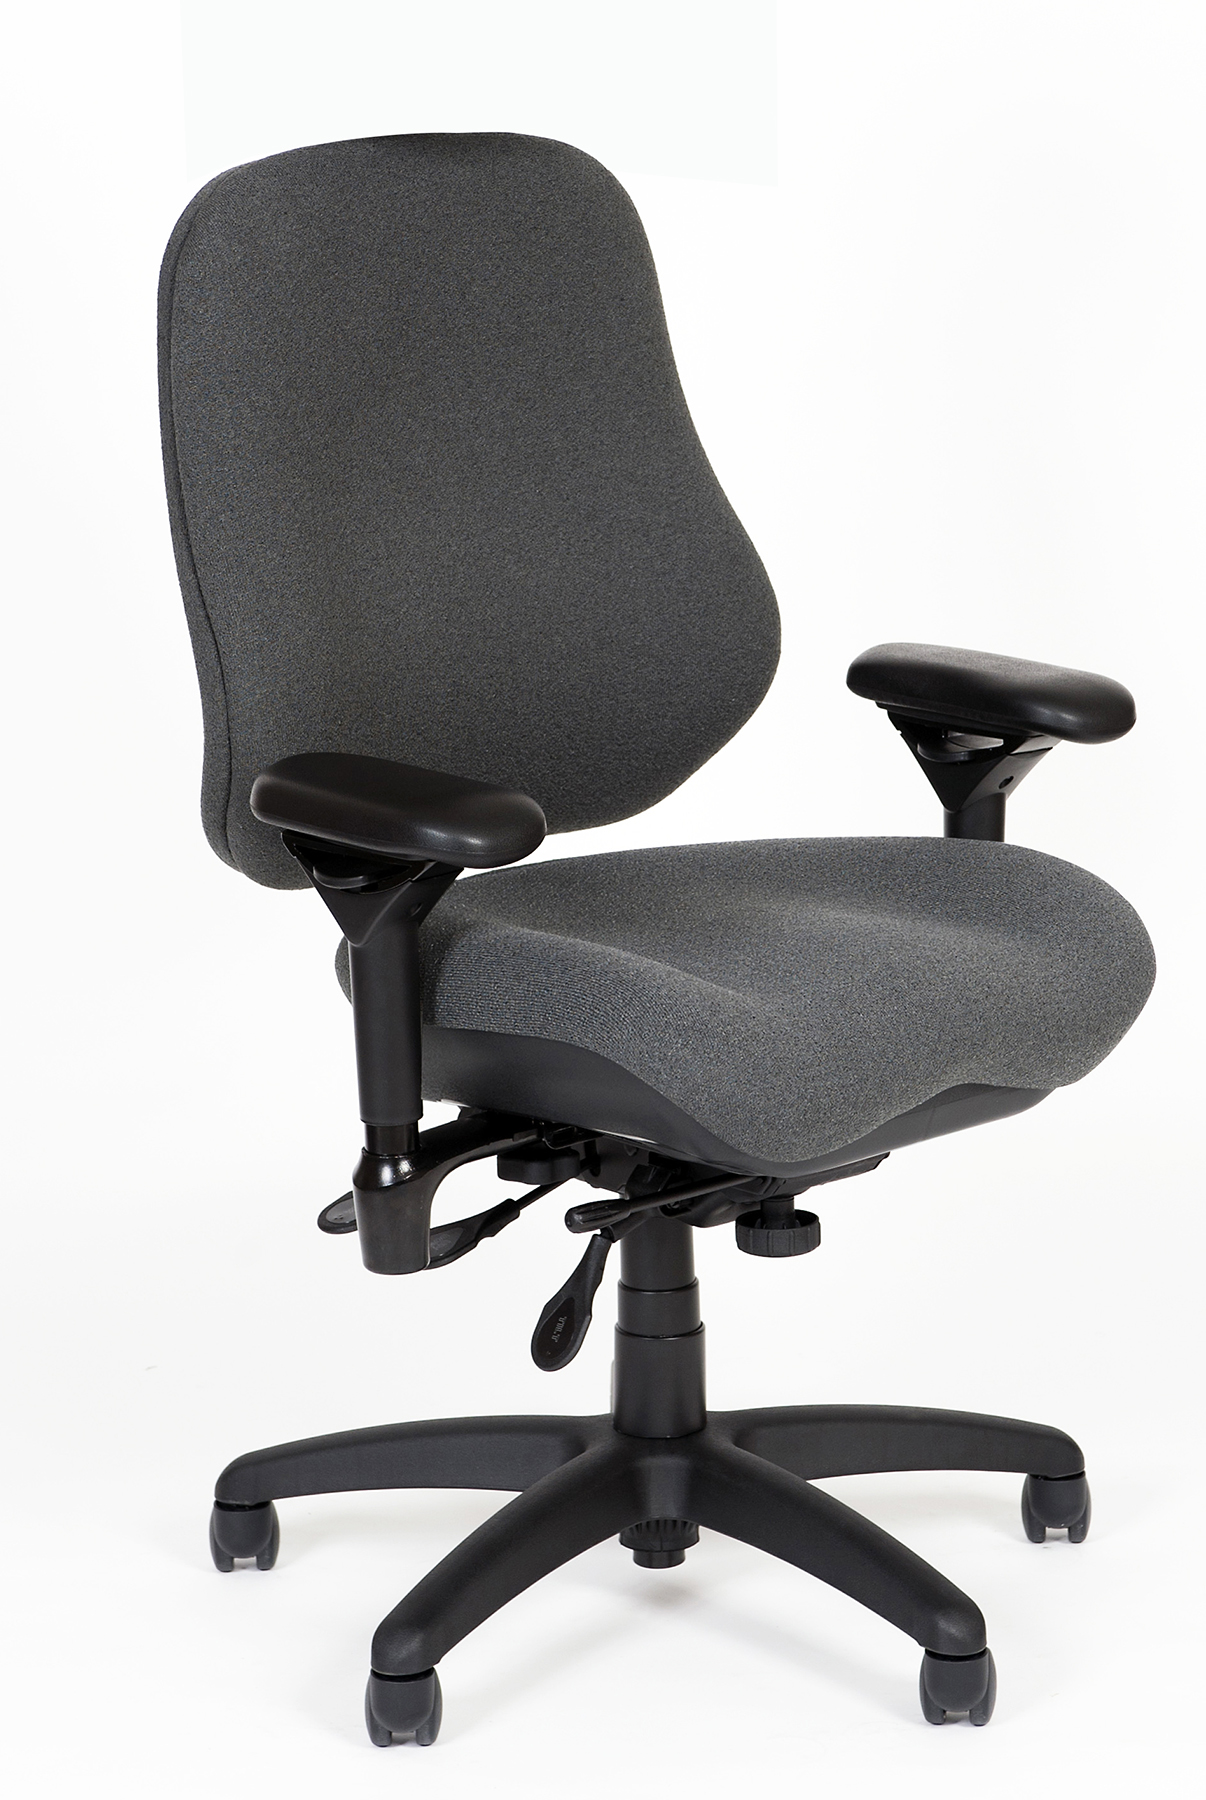 High Back Executive Ergonomic Chairs Store